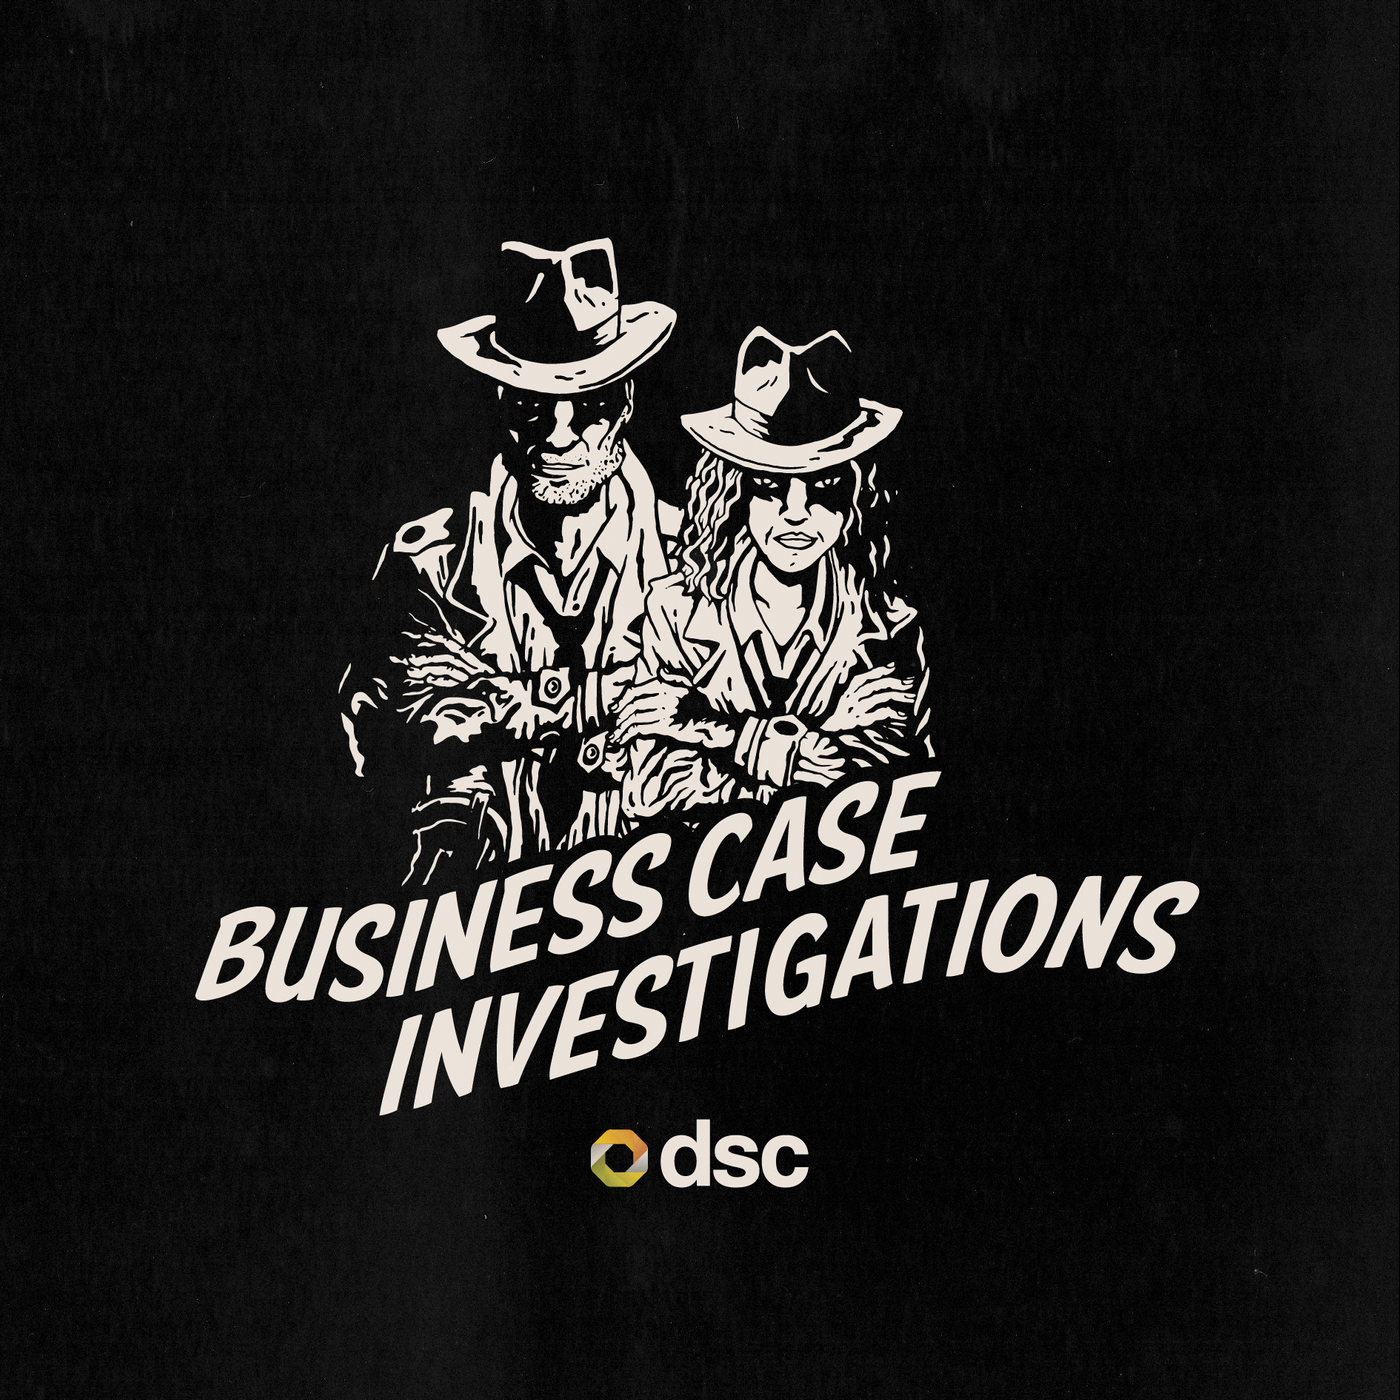 Business Case Investigations - Believing in People